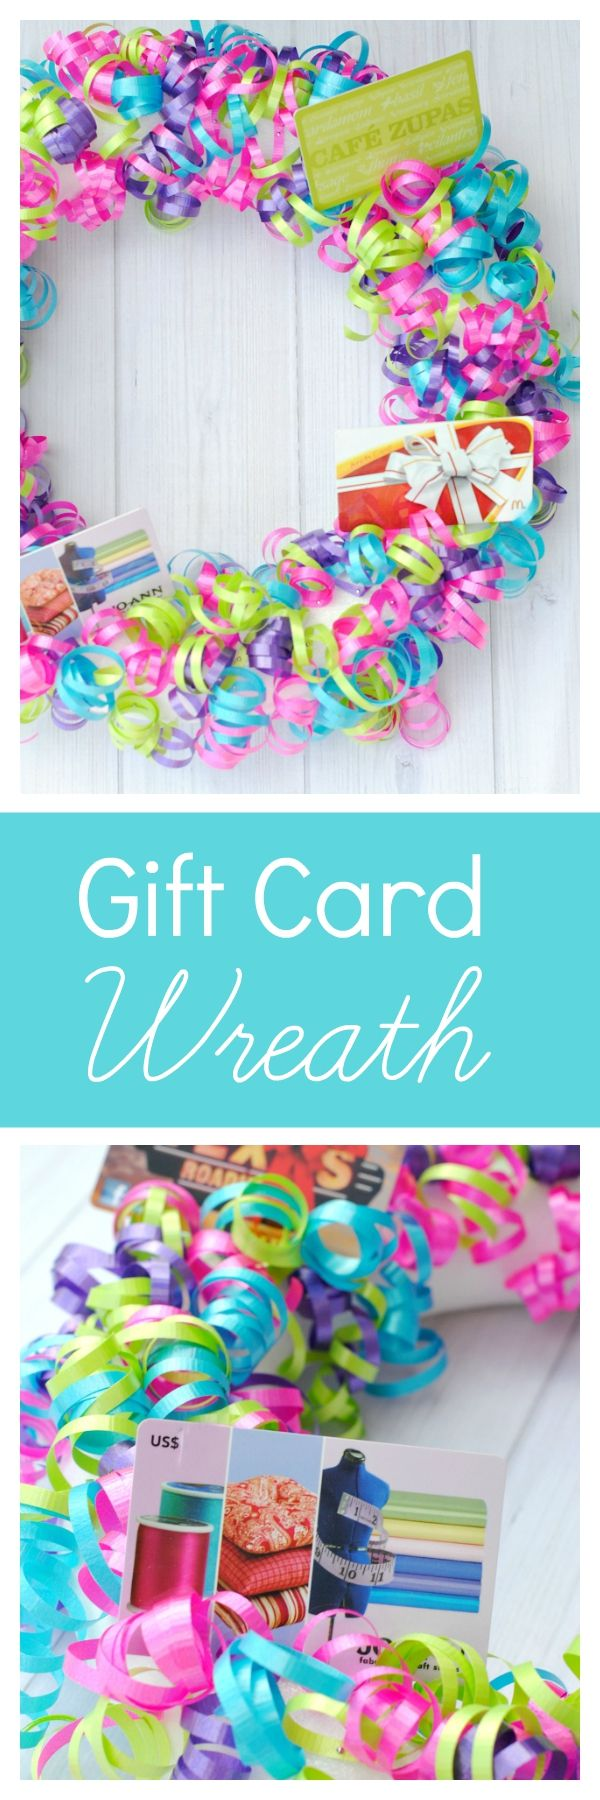 Creative Gift Card Ideas This Wreath Is A Super Fun Way To Give